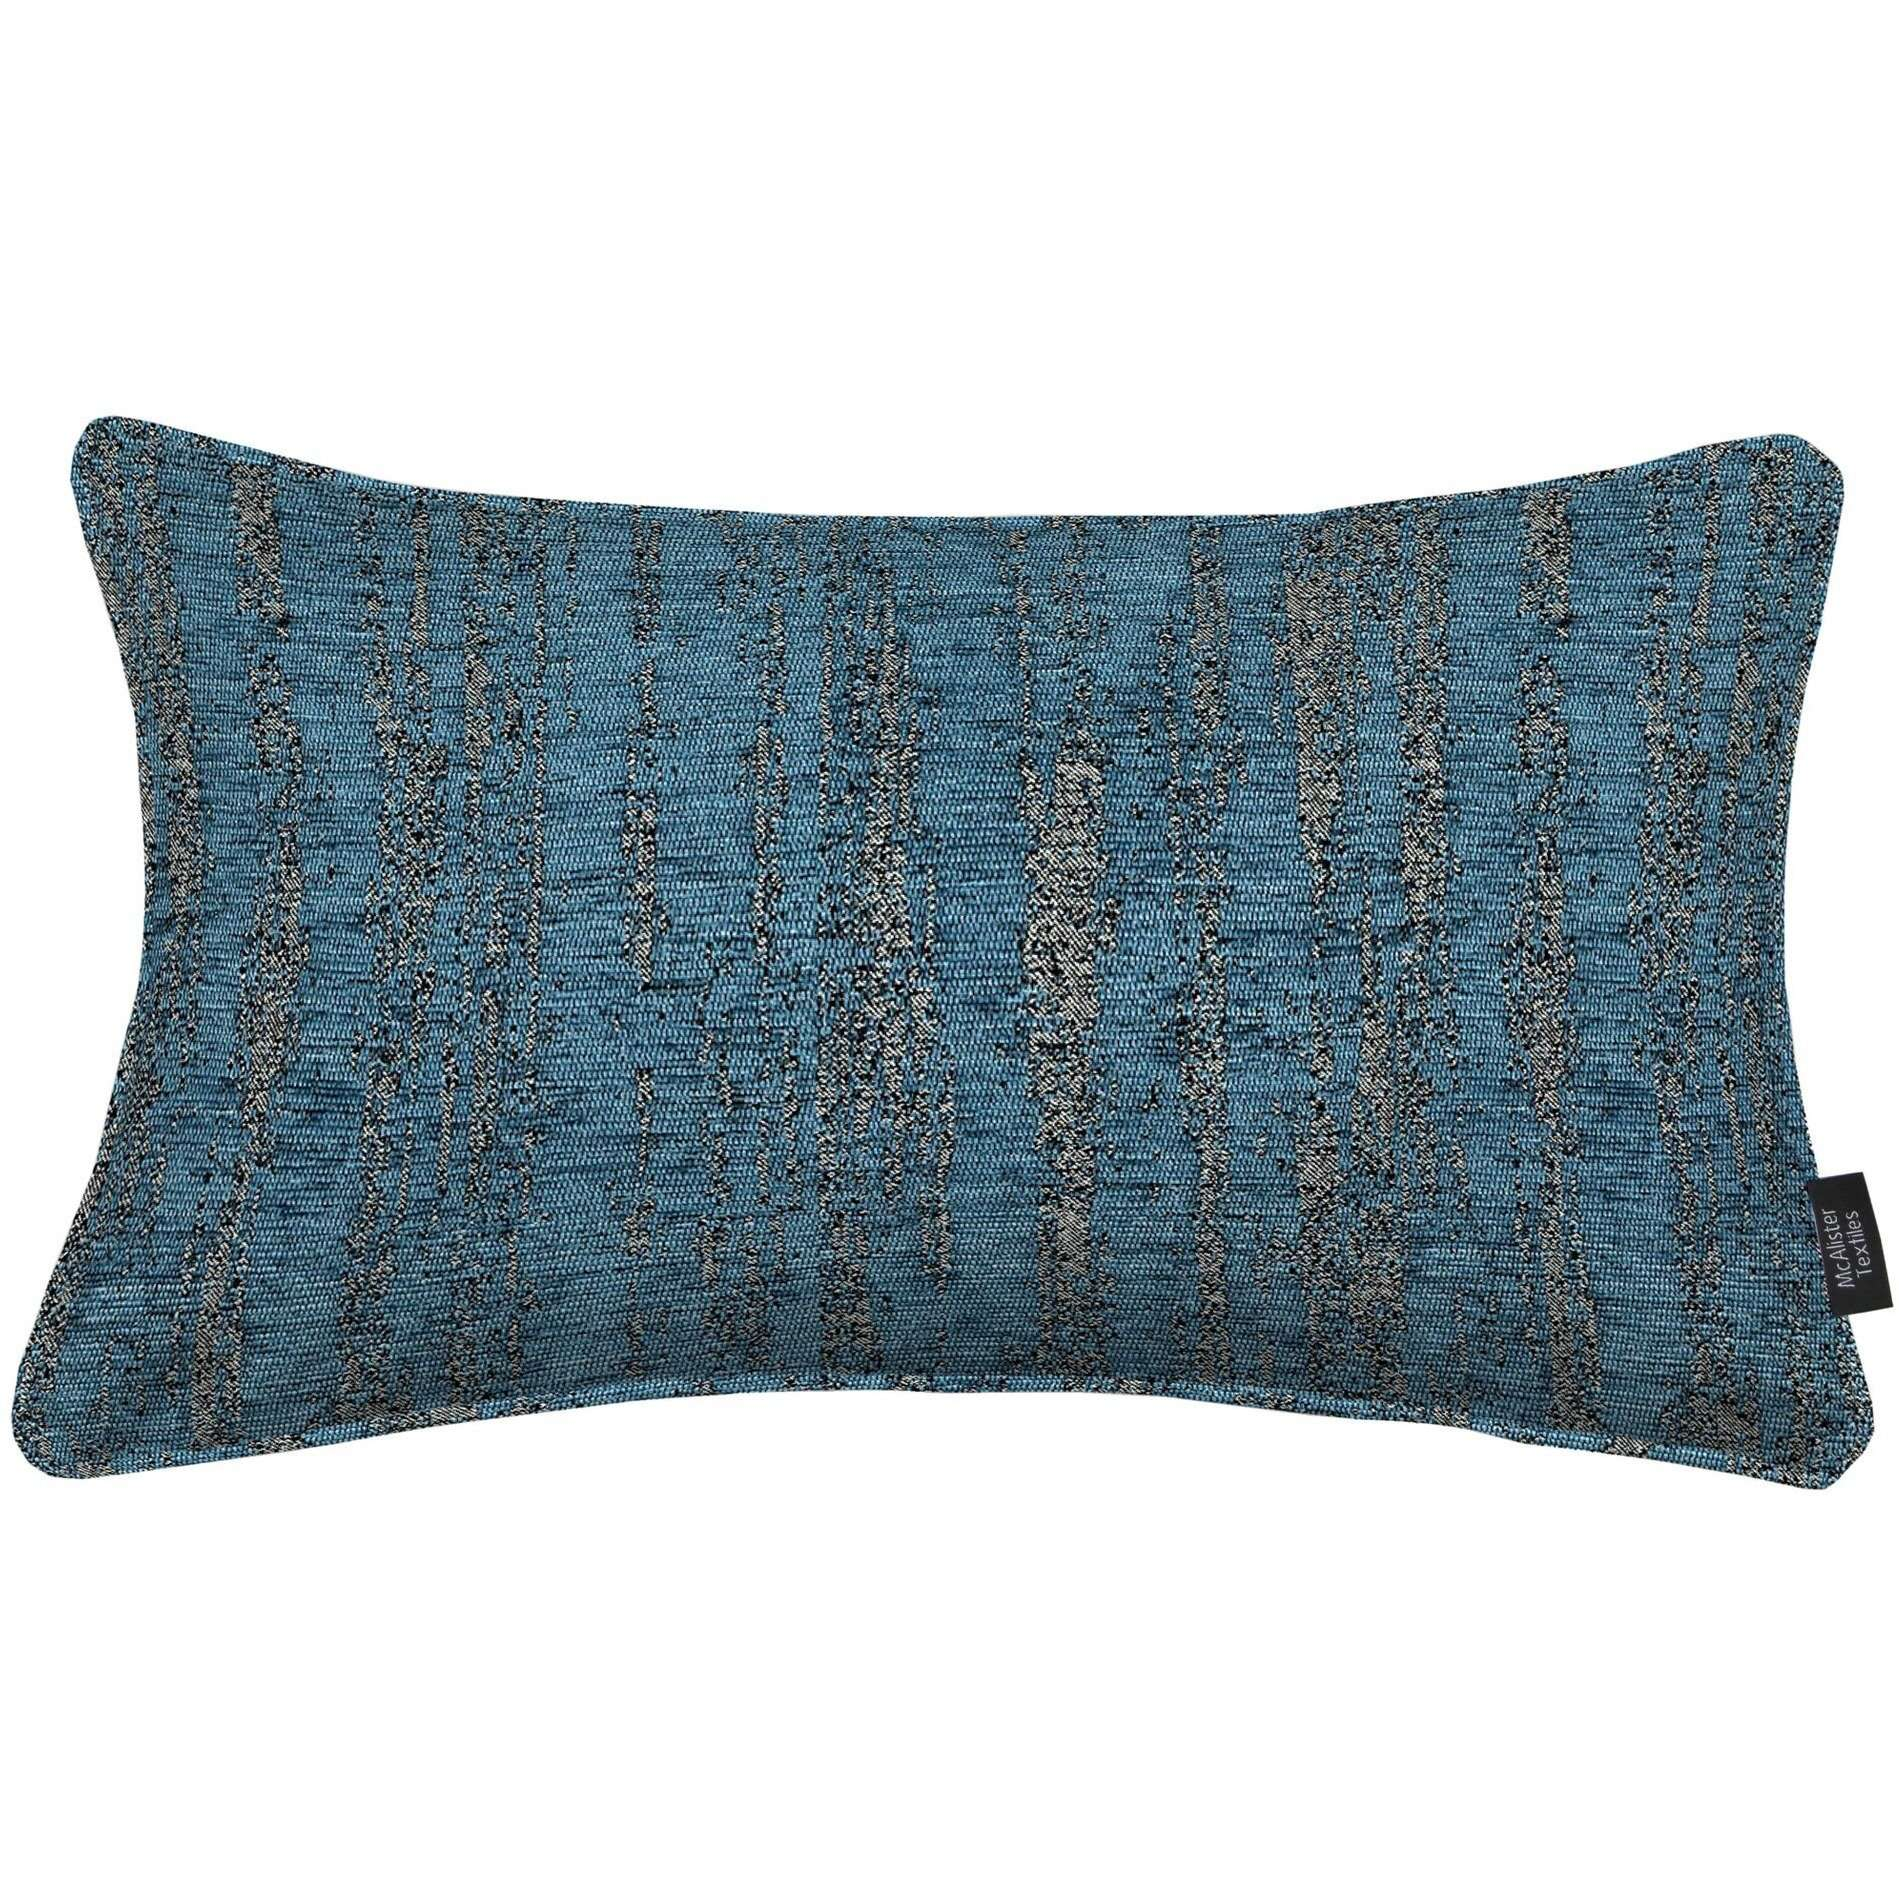 McAlister Textiles Textured Chenille Denim Blue Cushion Cushions and Covers Cover Only 50cm x 30cm